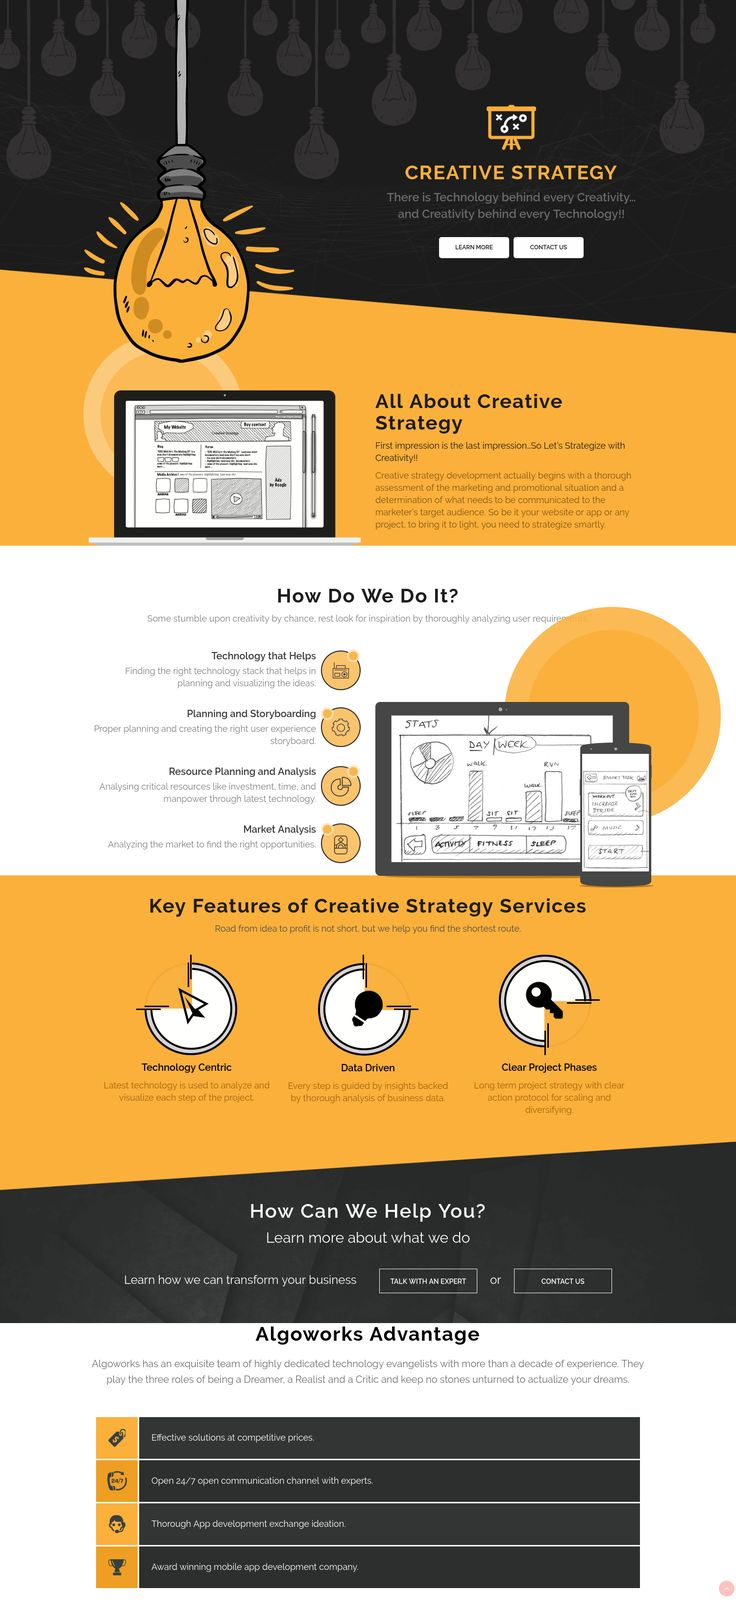 Usability and the mobile web a lita guide ebook ebook by 9781442263345 rakuten kobo array 21 best testing and qa images on pinterest software testing rh pinterest com fandeluxe Images